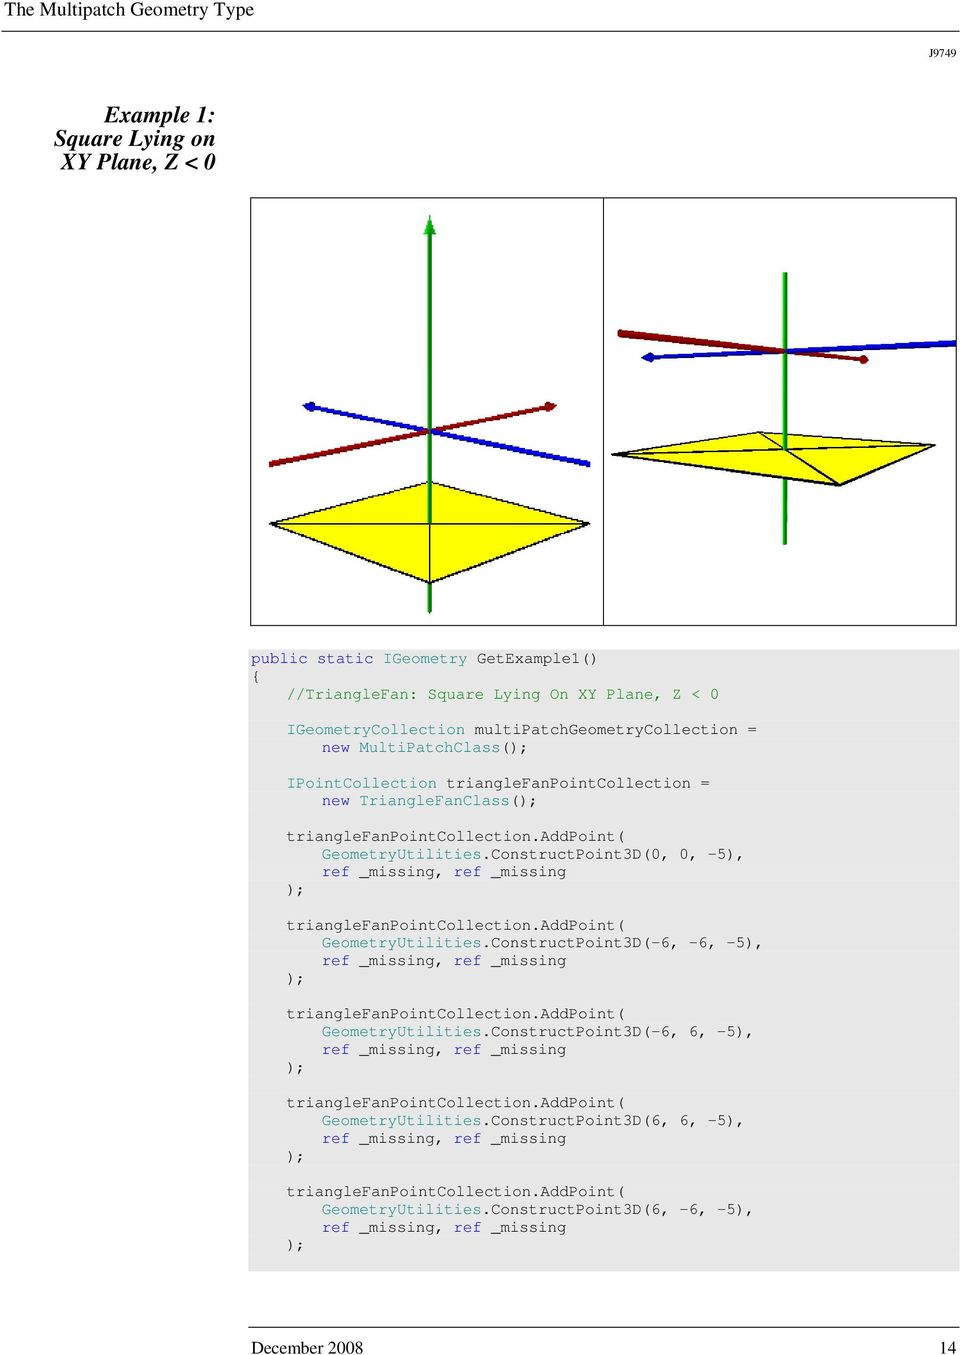 ConstructPoint3D(0, 0, -5), trianglefanpointcollection.addpoint( GeometryUtilities.ConstructPoint3D(-6, -6, -5), trianglefanpointcollection.addpoint( GeometryUtilities.ConstructPoint3D(-6, 6, -5), trianglefanpointcollection.